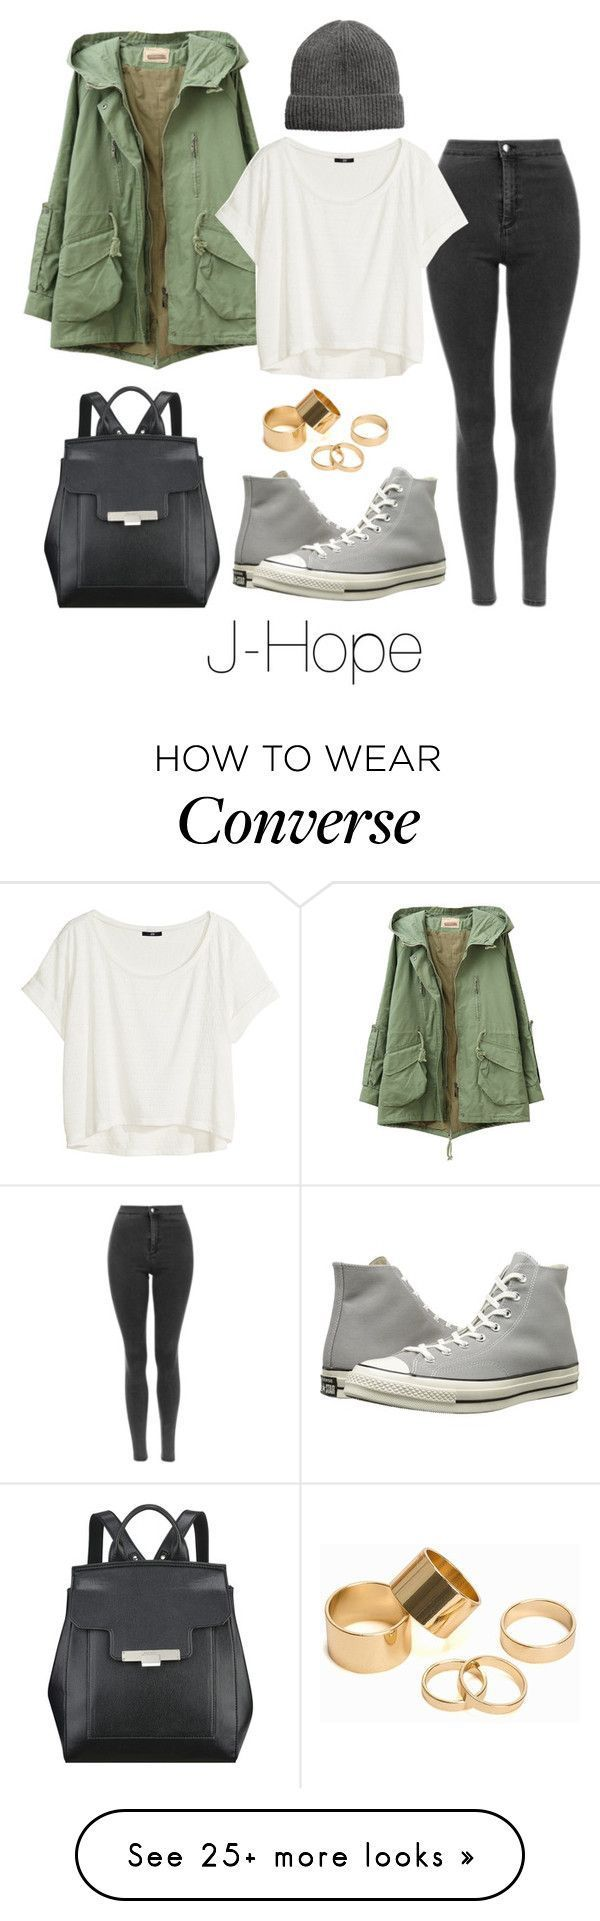 JHope Inspired w Converse by btsoutfits on Polyvore featuring HM Nine West  JHope Inspired w Converse by btsoutfits on Polyvore featuring HM Nine West Pieces and Co